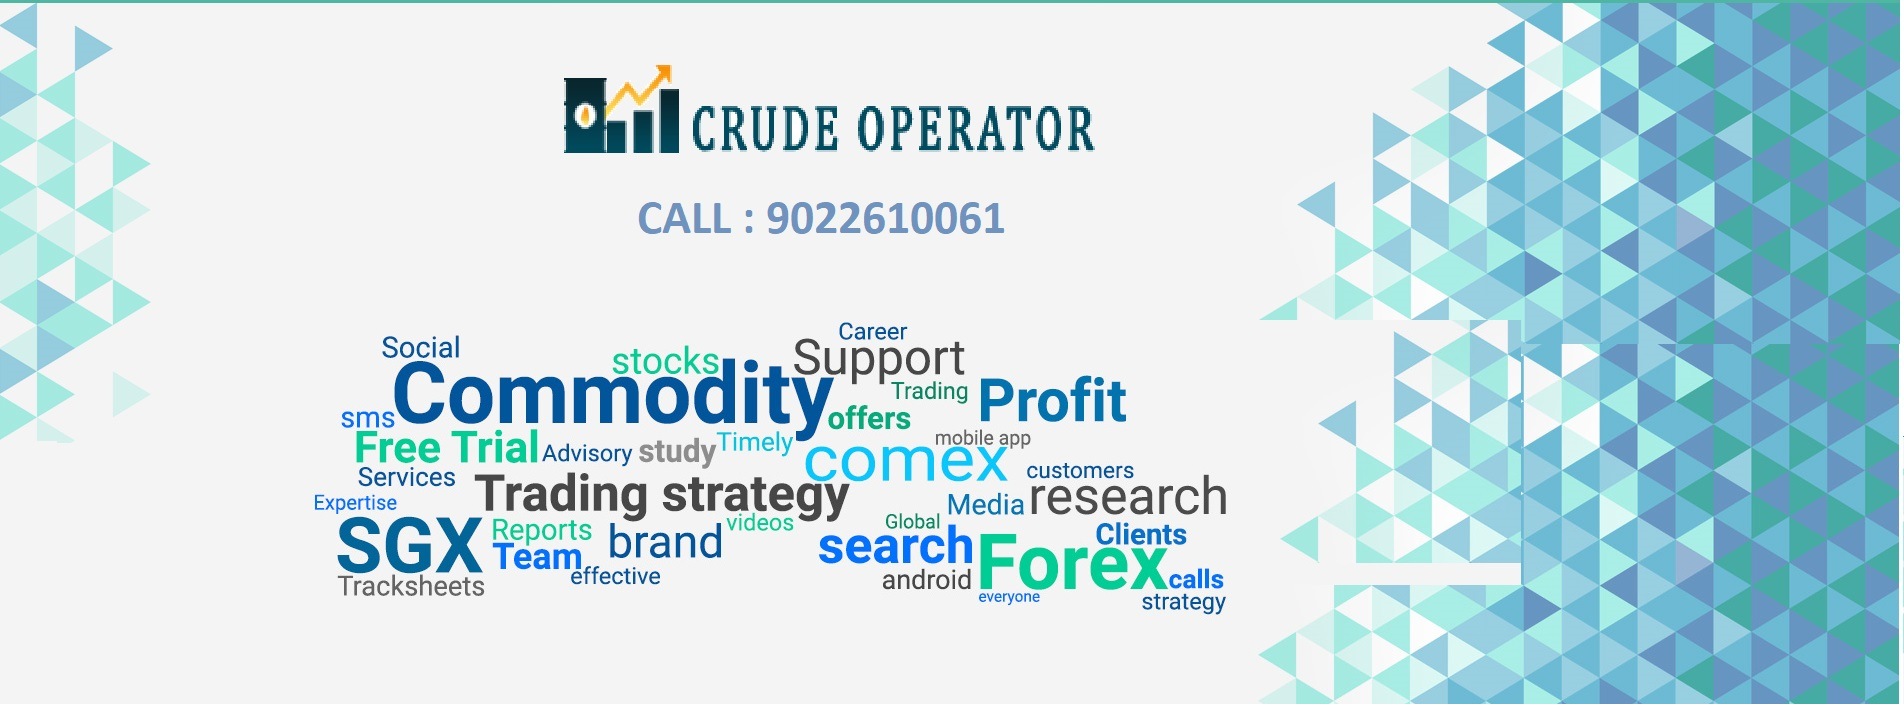 MCX COMMODITY INTRADAY TRADING : TIPS, STRATEGIES & BASICS RULES - CRUDE OPERATOR